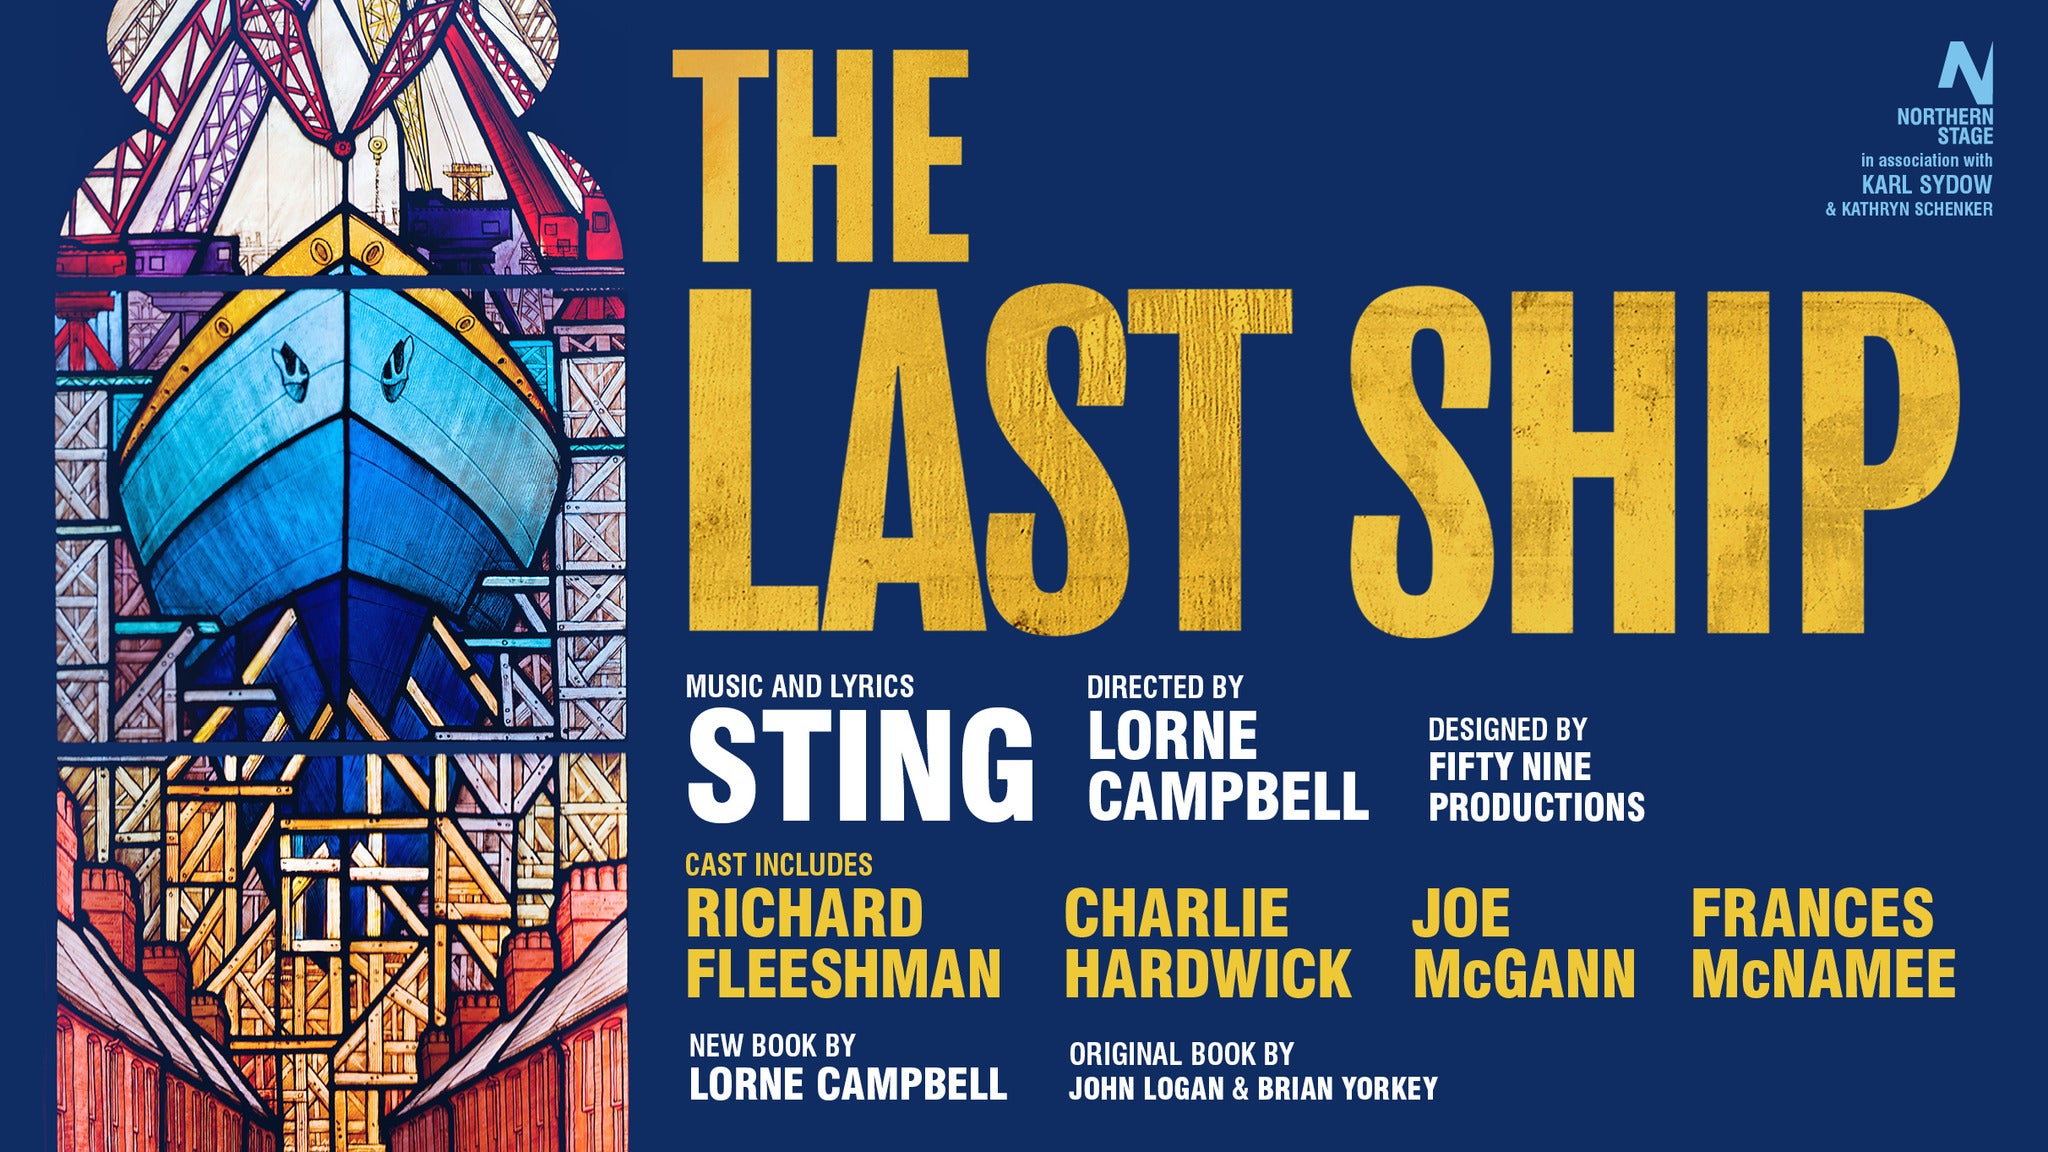 The Last Ship at Golden Gate Theater